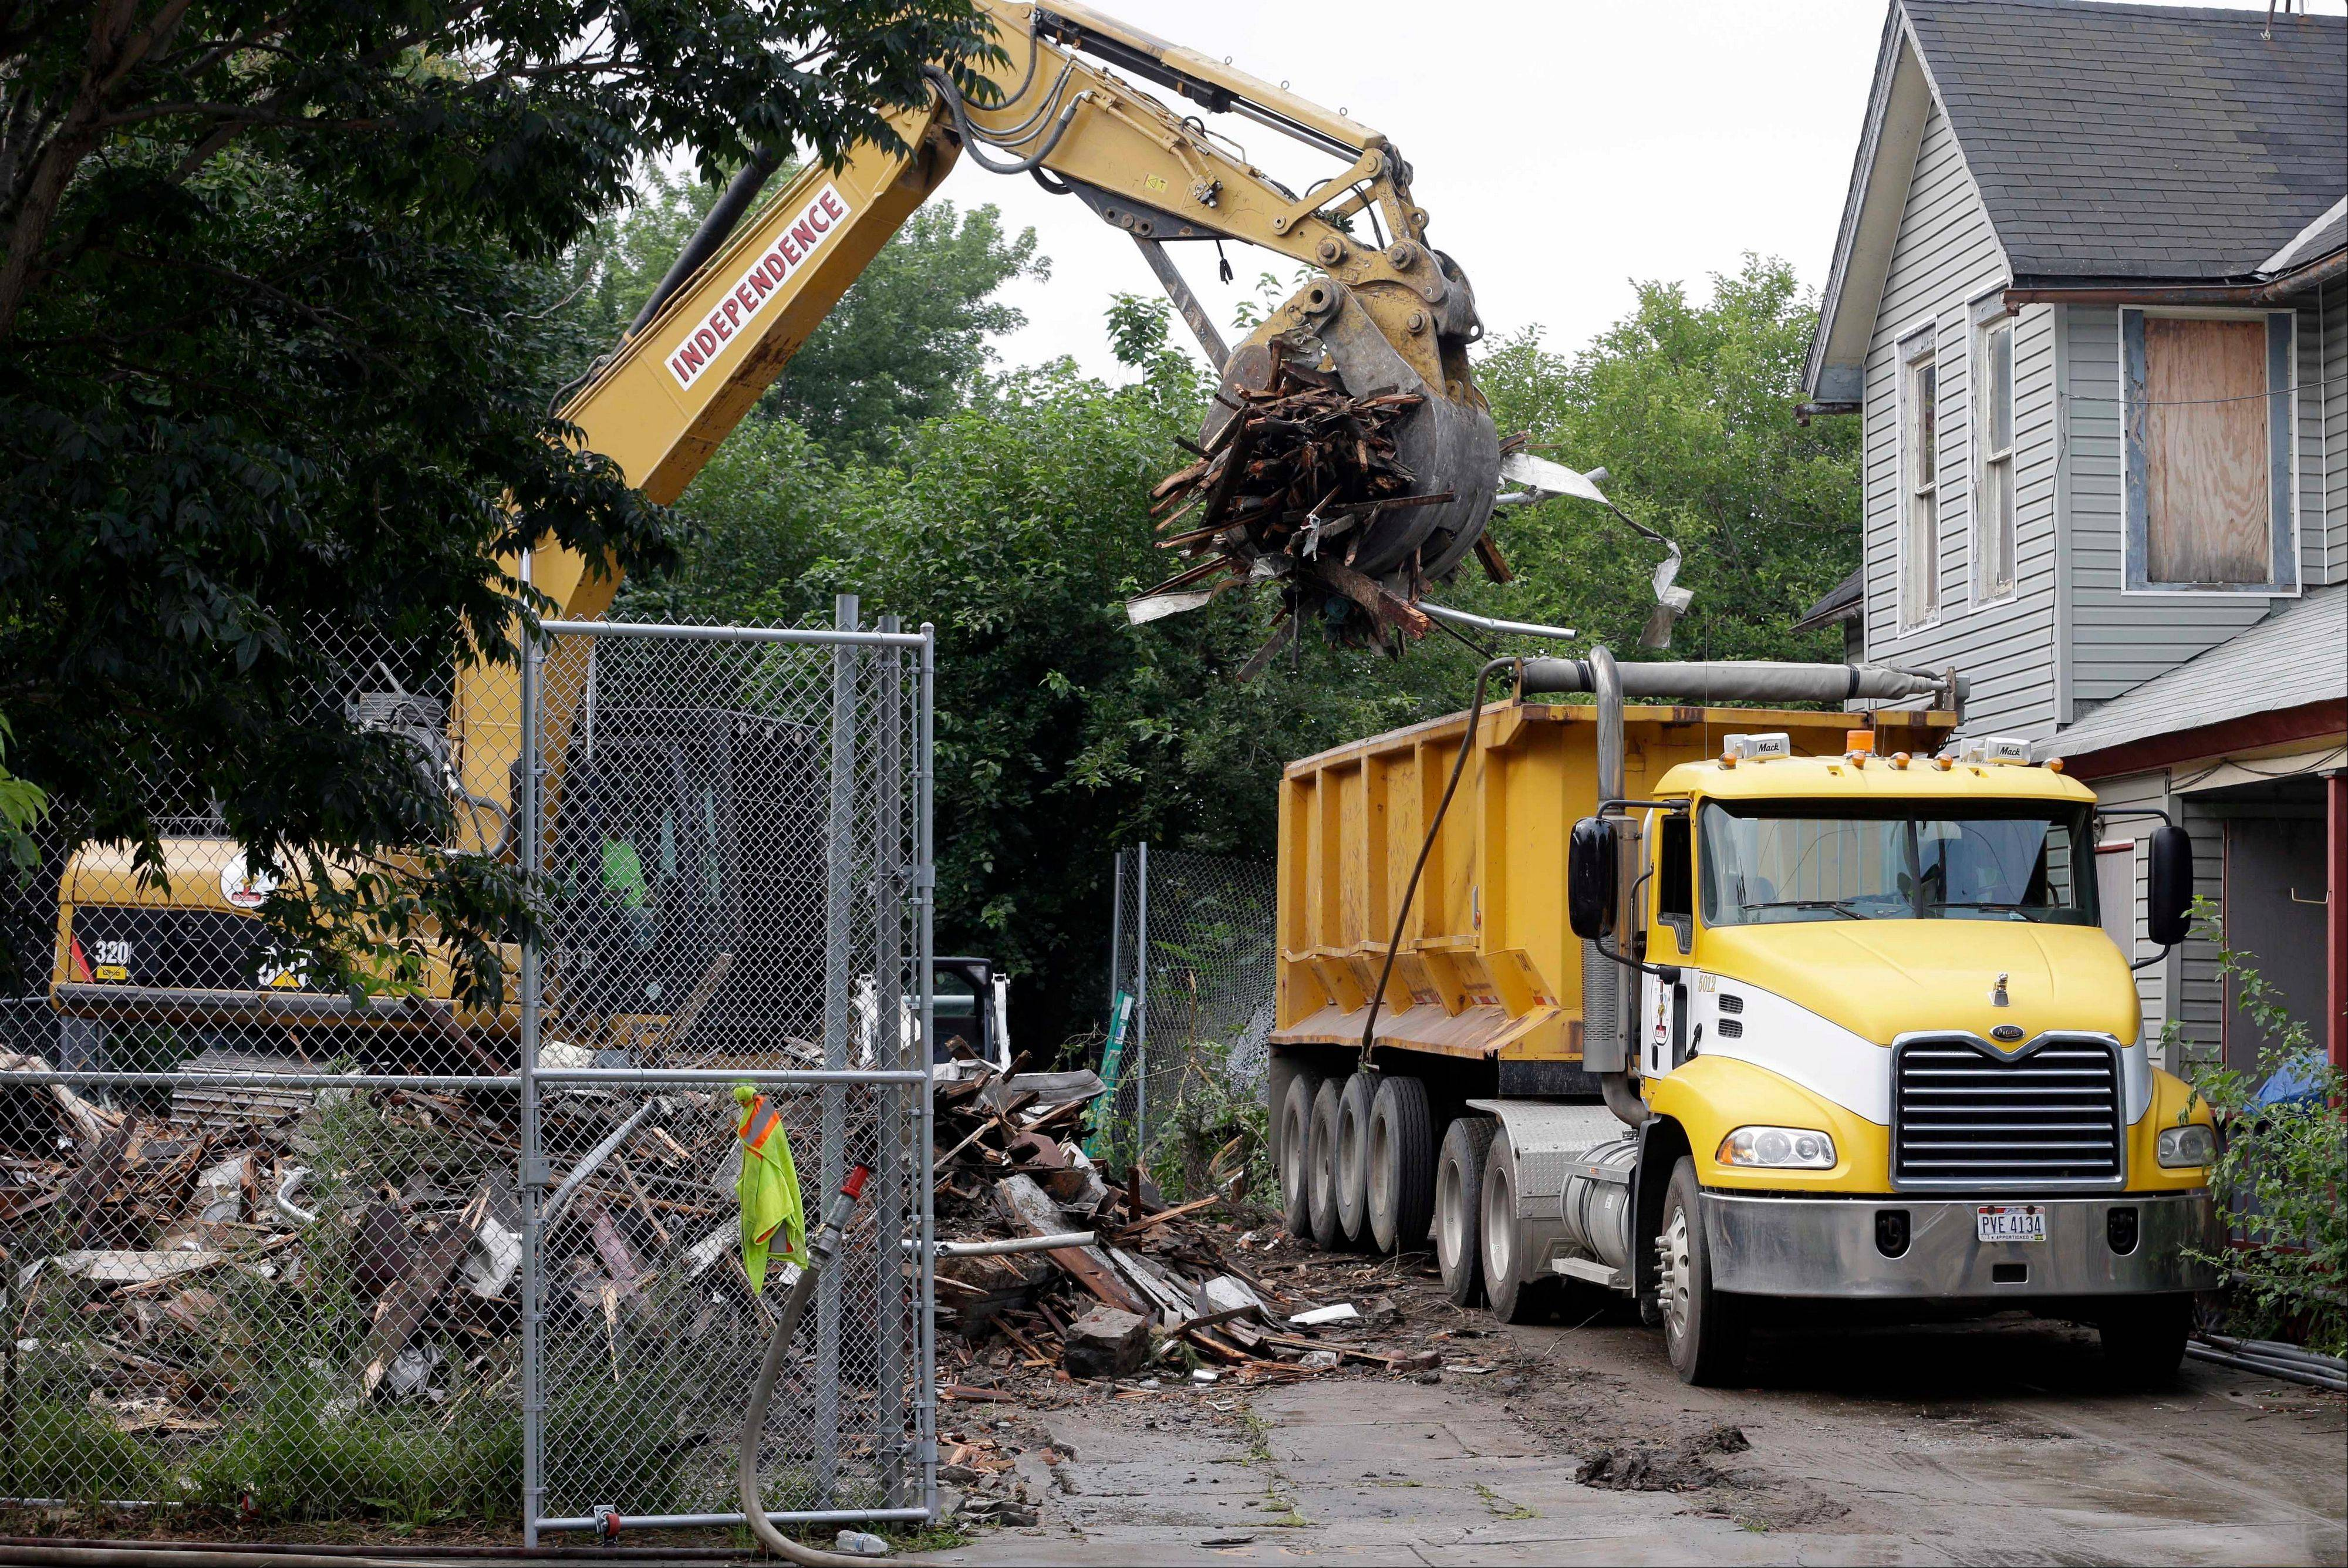 Debris is loaded onto a truck at a house where three women were held captive and raped for more than a decade, Wednesday, Aug. 7, 2013, in Cleveland. Authorities want to make sure the rubble isn�t sold online as �murderabilia,� though no one died there. The house was torn down as part of a deal that spared Ariel Castro a possible death sentence. He was sentenced last week to life in prison plus 1,000 years. He apologized but blamed his addiction to pornography.